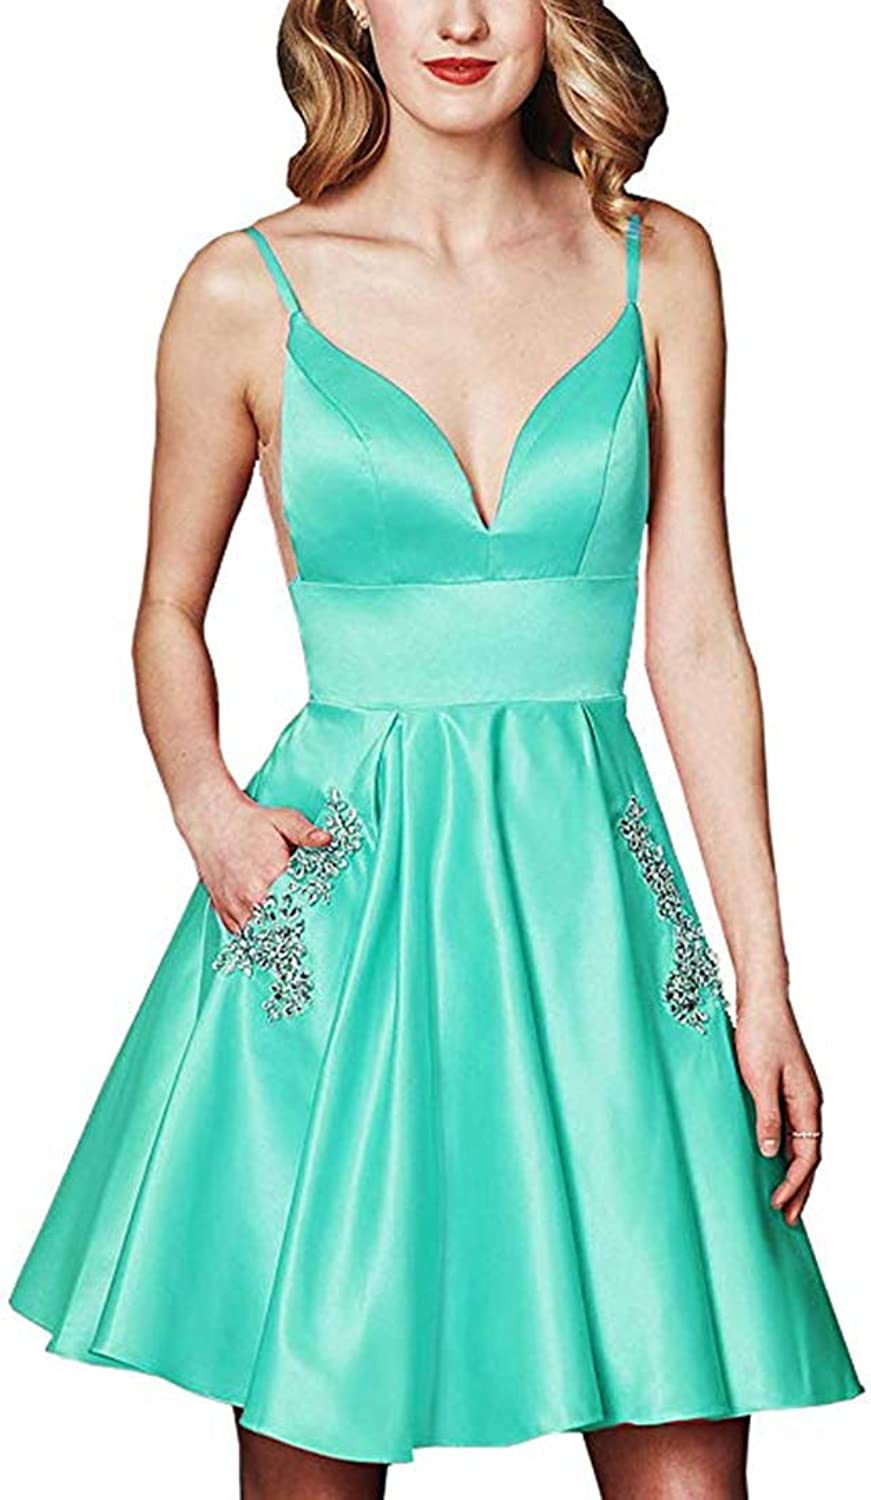 Alilith.Z Sexy Beaded Crystal Homecoming Dresses Short Satin Prom Party Gowns for Women with Pockets 2019